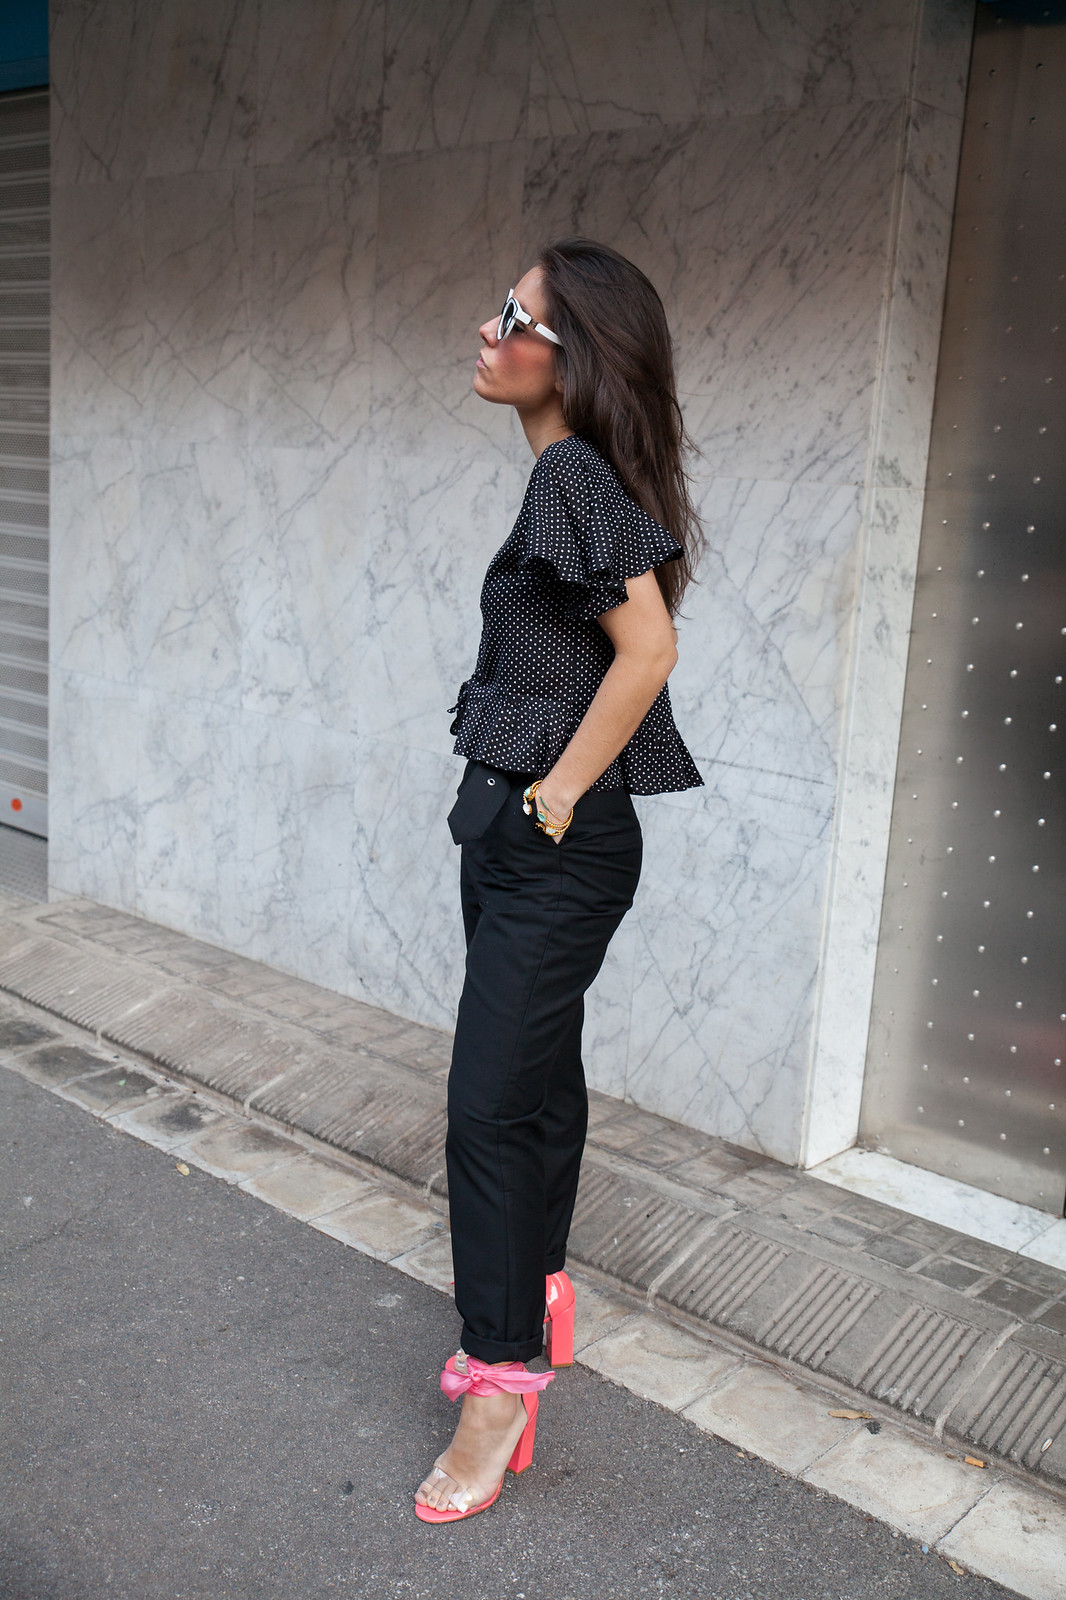 02_NA-KD_DOTS_BLACK_OUTFIT_THEGUESTGIRL_INFLUENCER_SPAIN